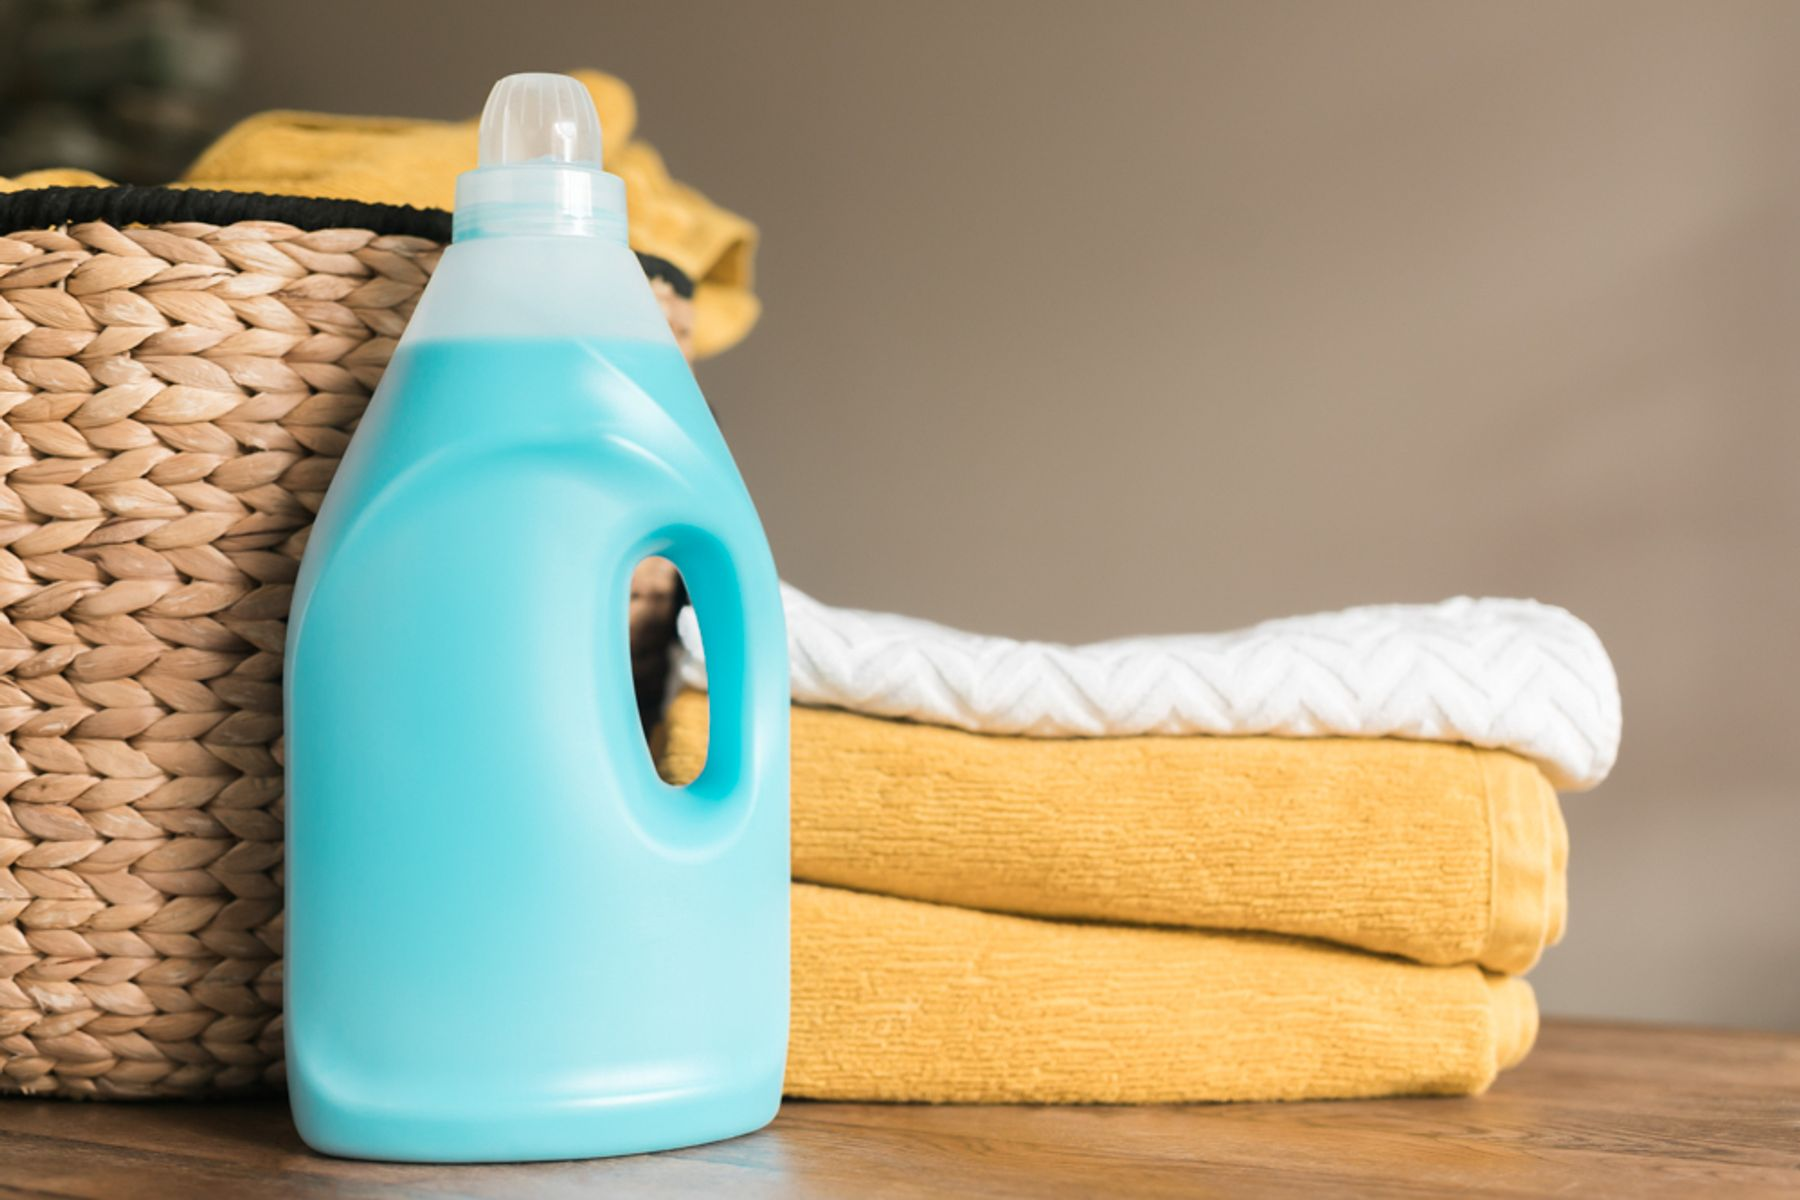 A bottle of fabric conditioner alongside folded towels and a laundry basket